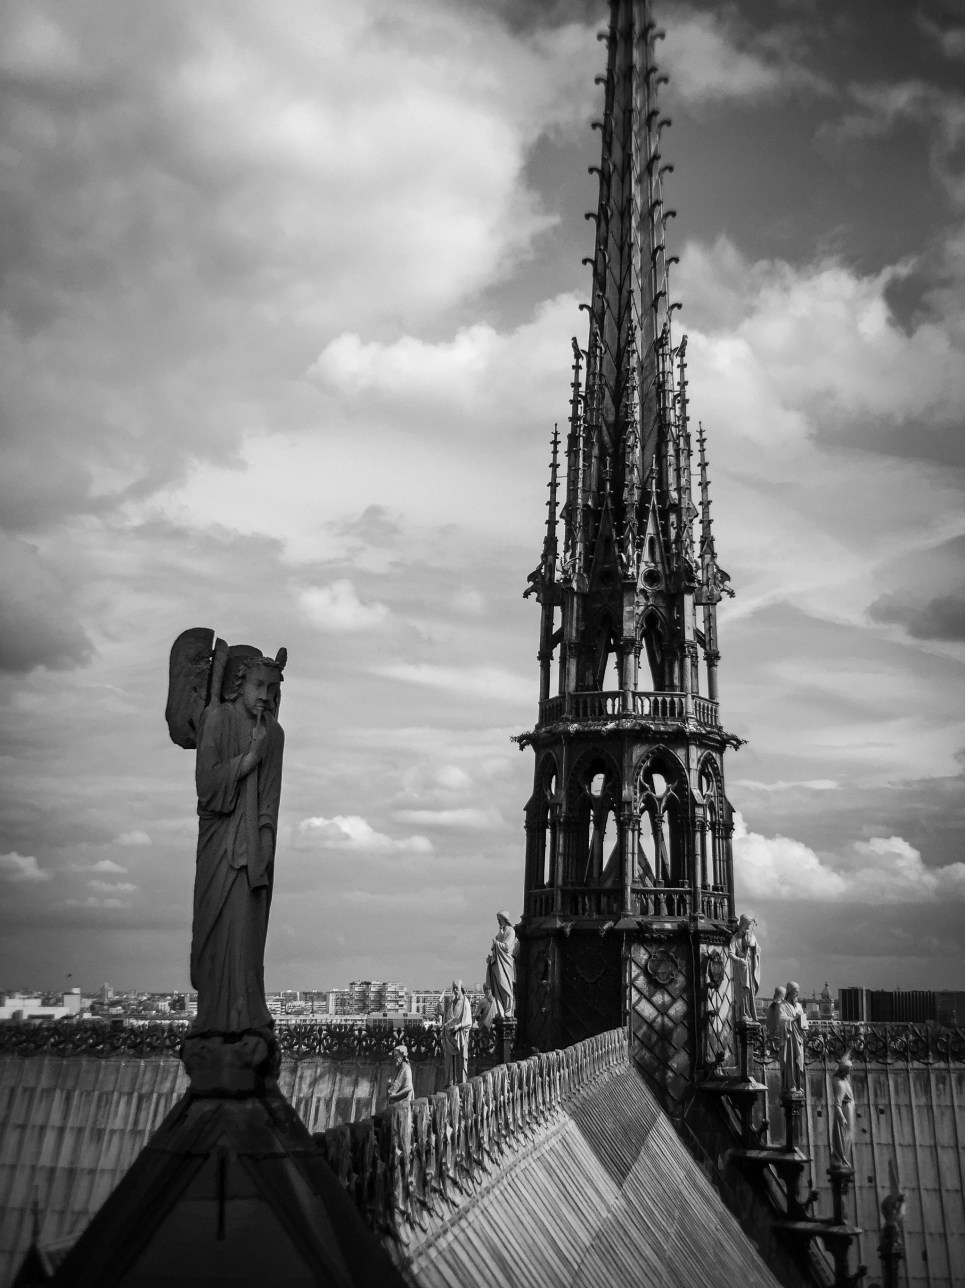 The spire on top of Notre-Dame Cathedral in Paris, France.